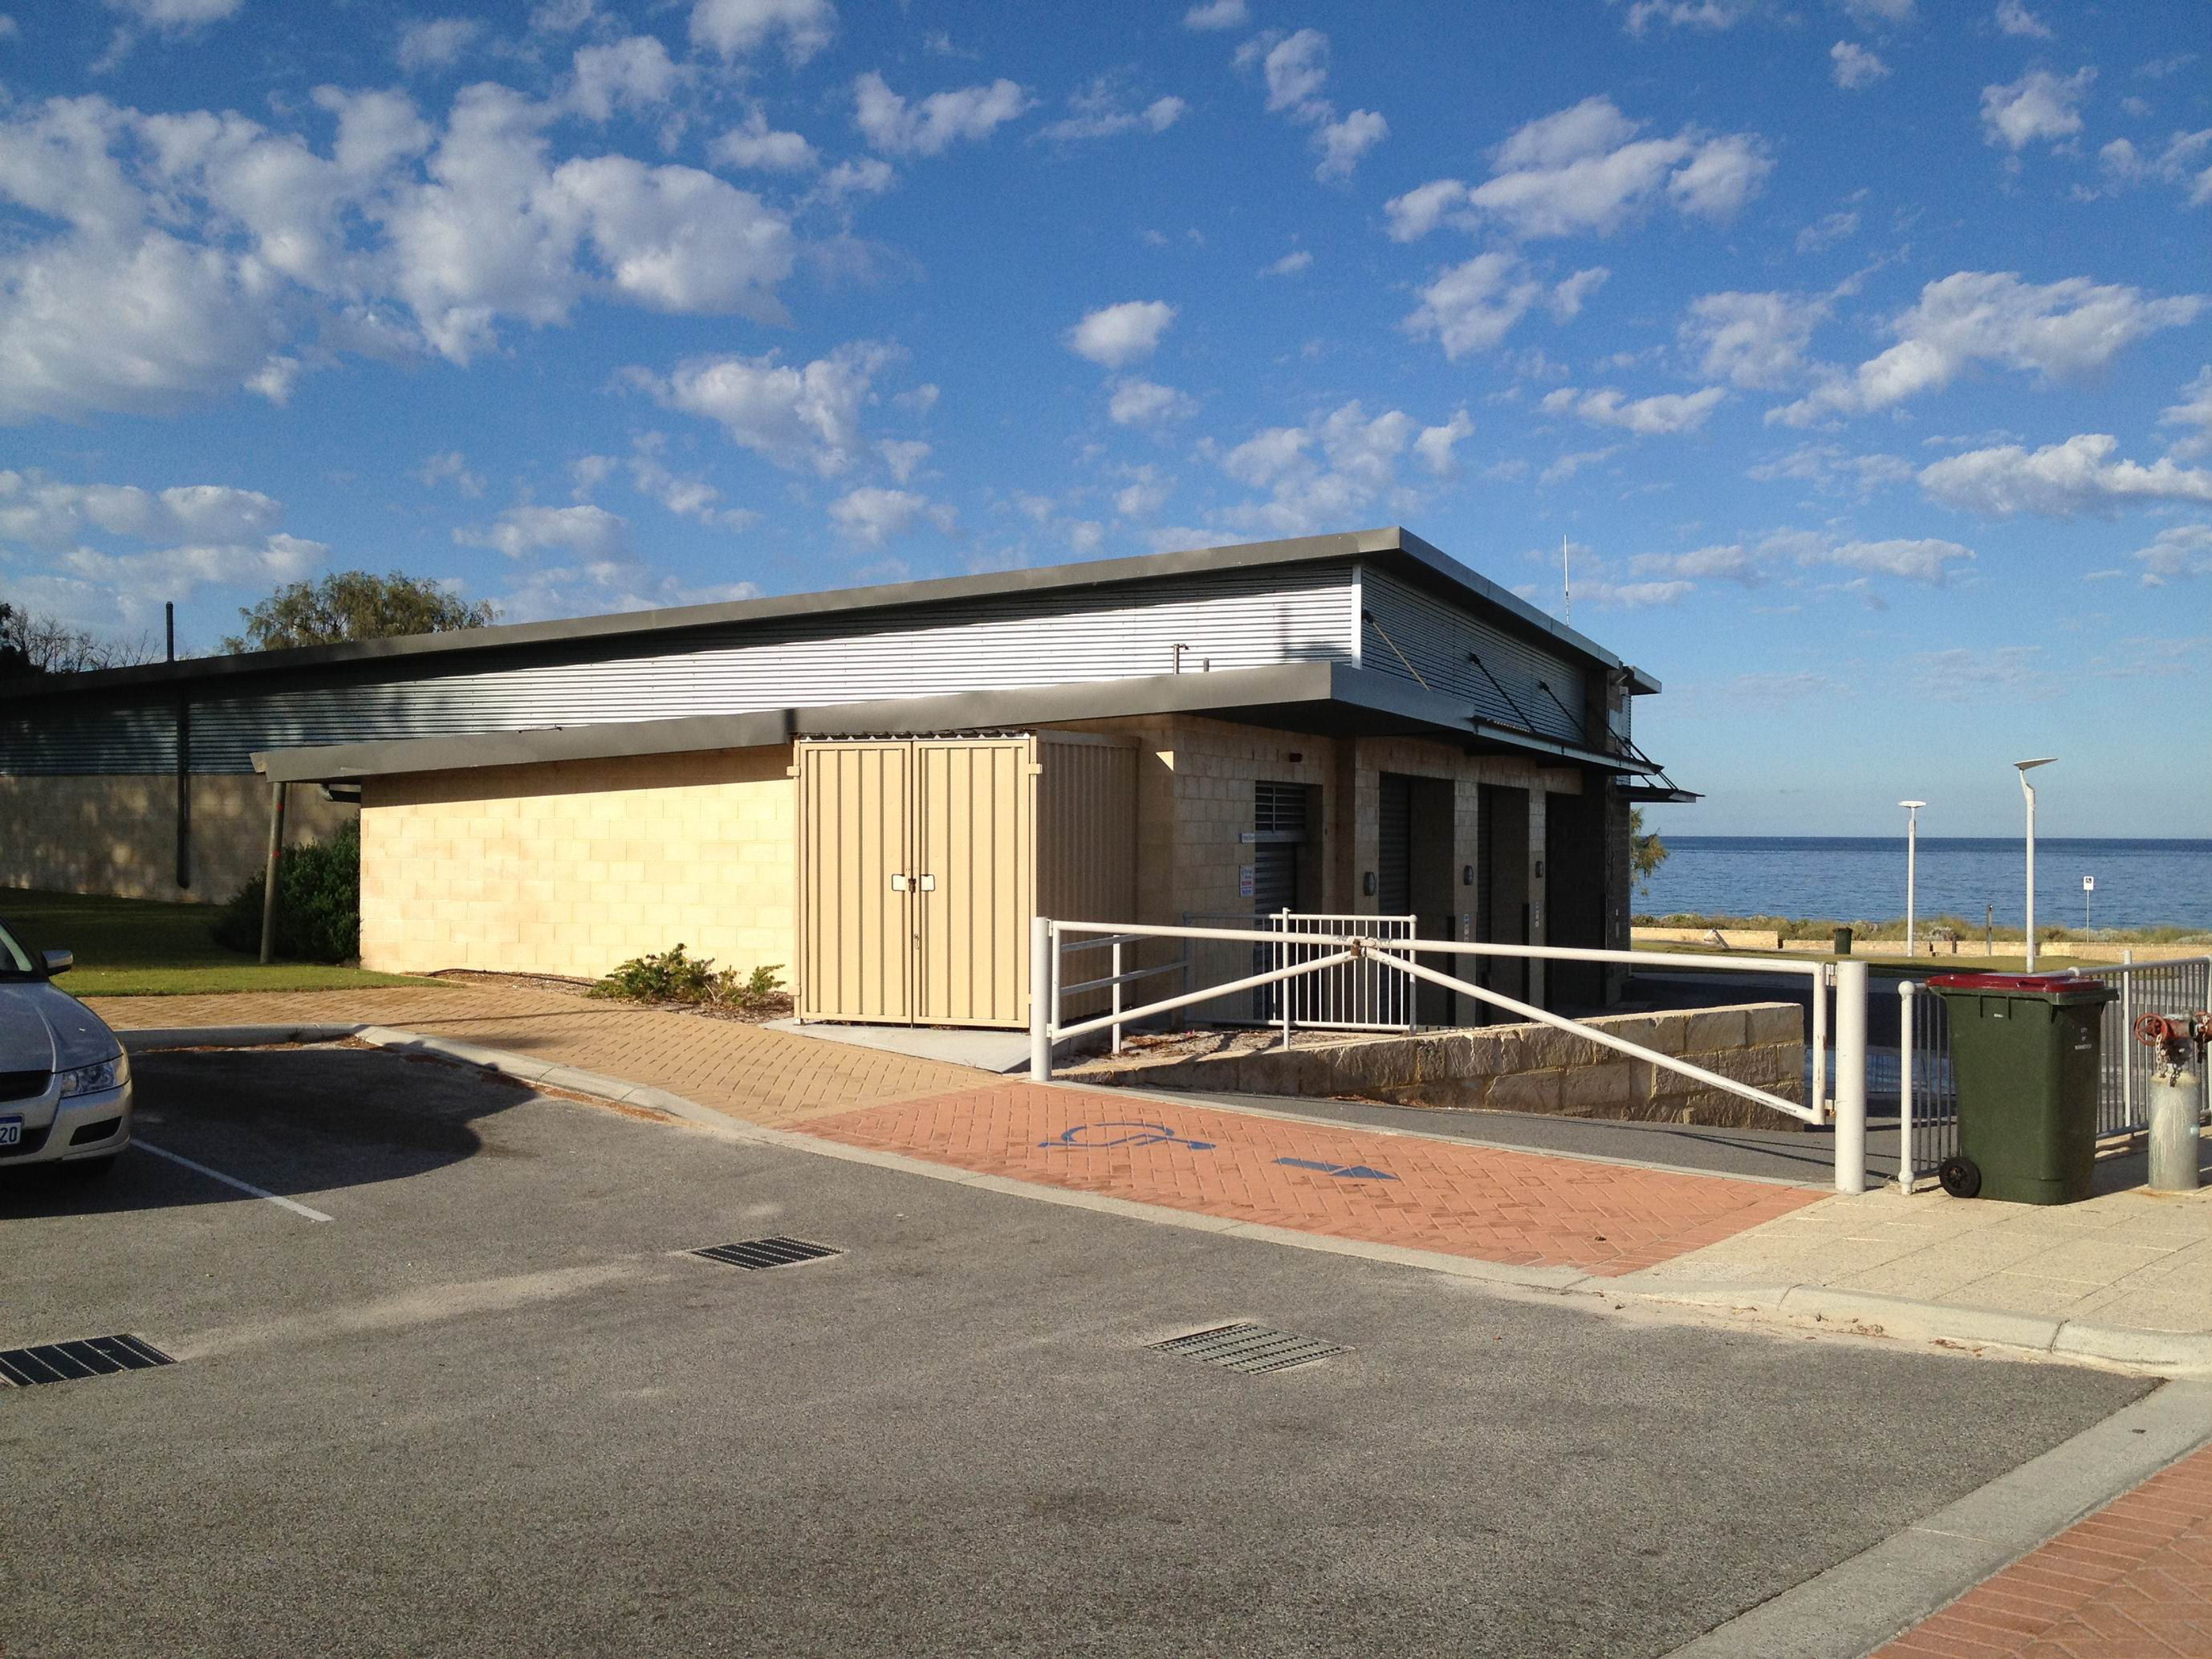 Broad Construction Services WA has won the $3.06 million contract to build Quinns Mindarie Community Centre above the surf life saving club.